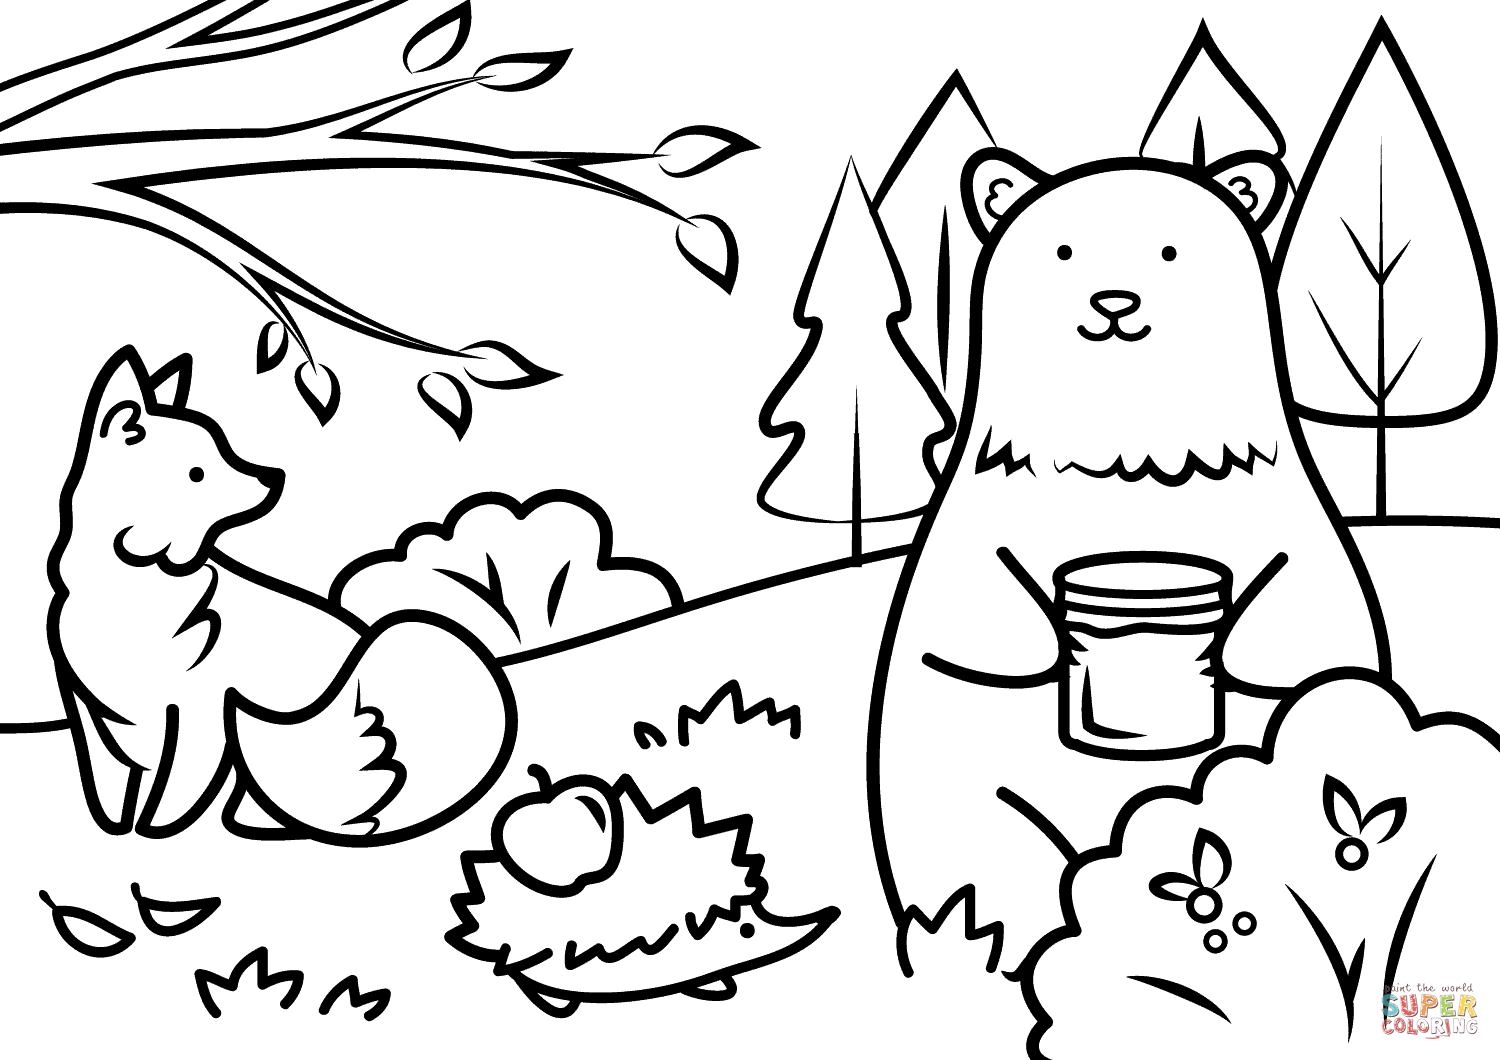 Autumn Animals Coloring Page | Free Printable Coloring Pages - Free Printable Autumn Coloring Sheets